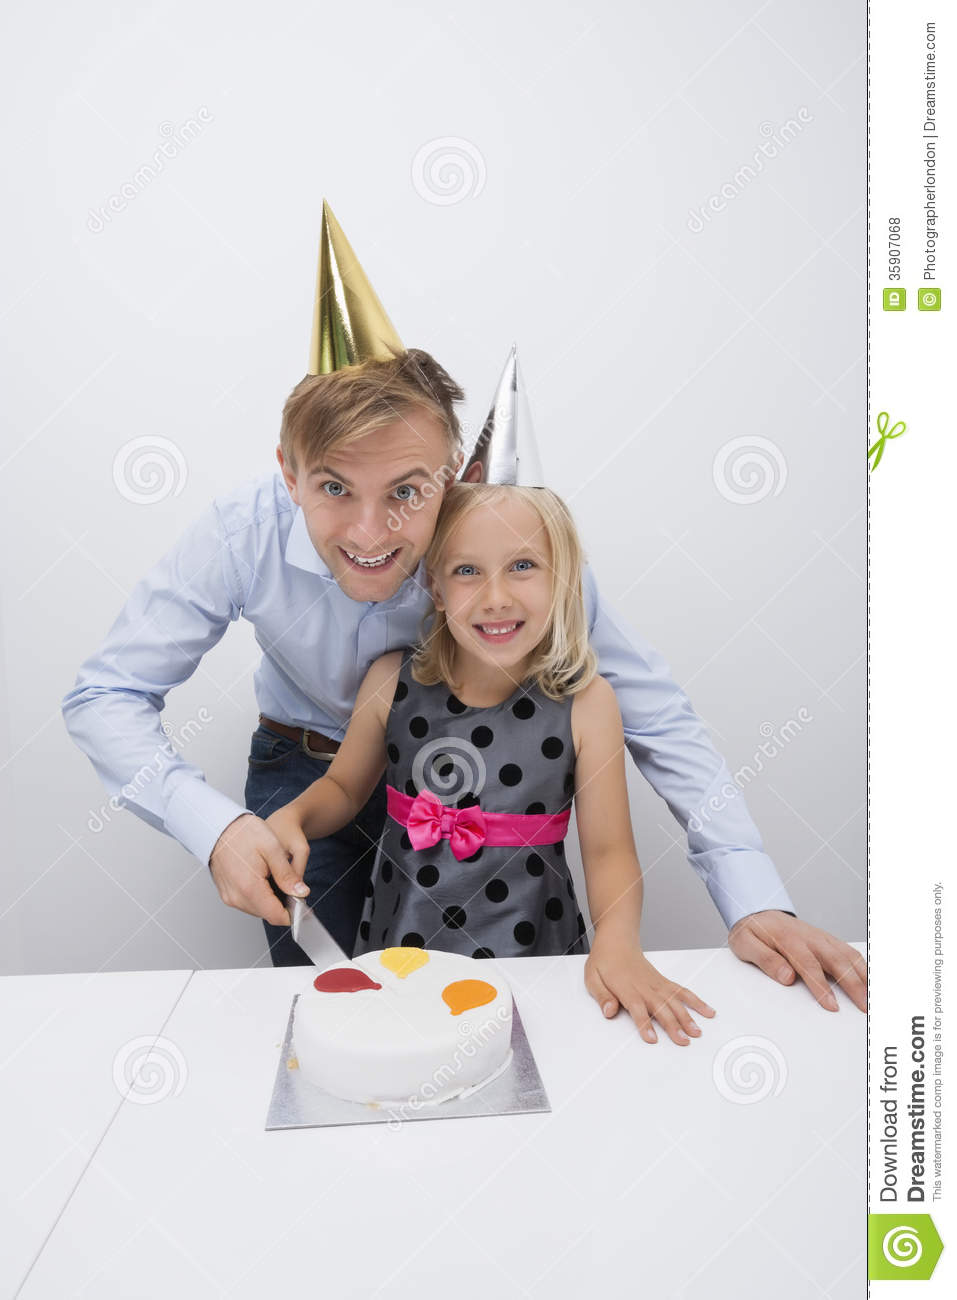 Portrait Of Happy Father And Daughter Cutting Birthday Cake At Table